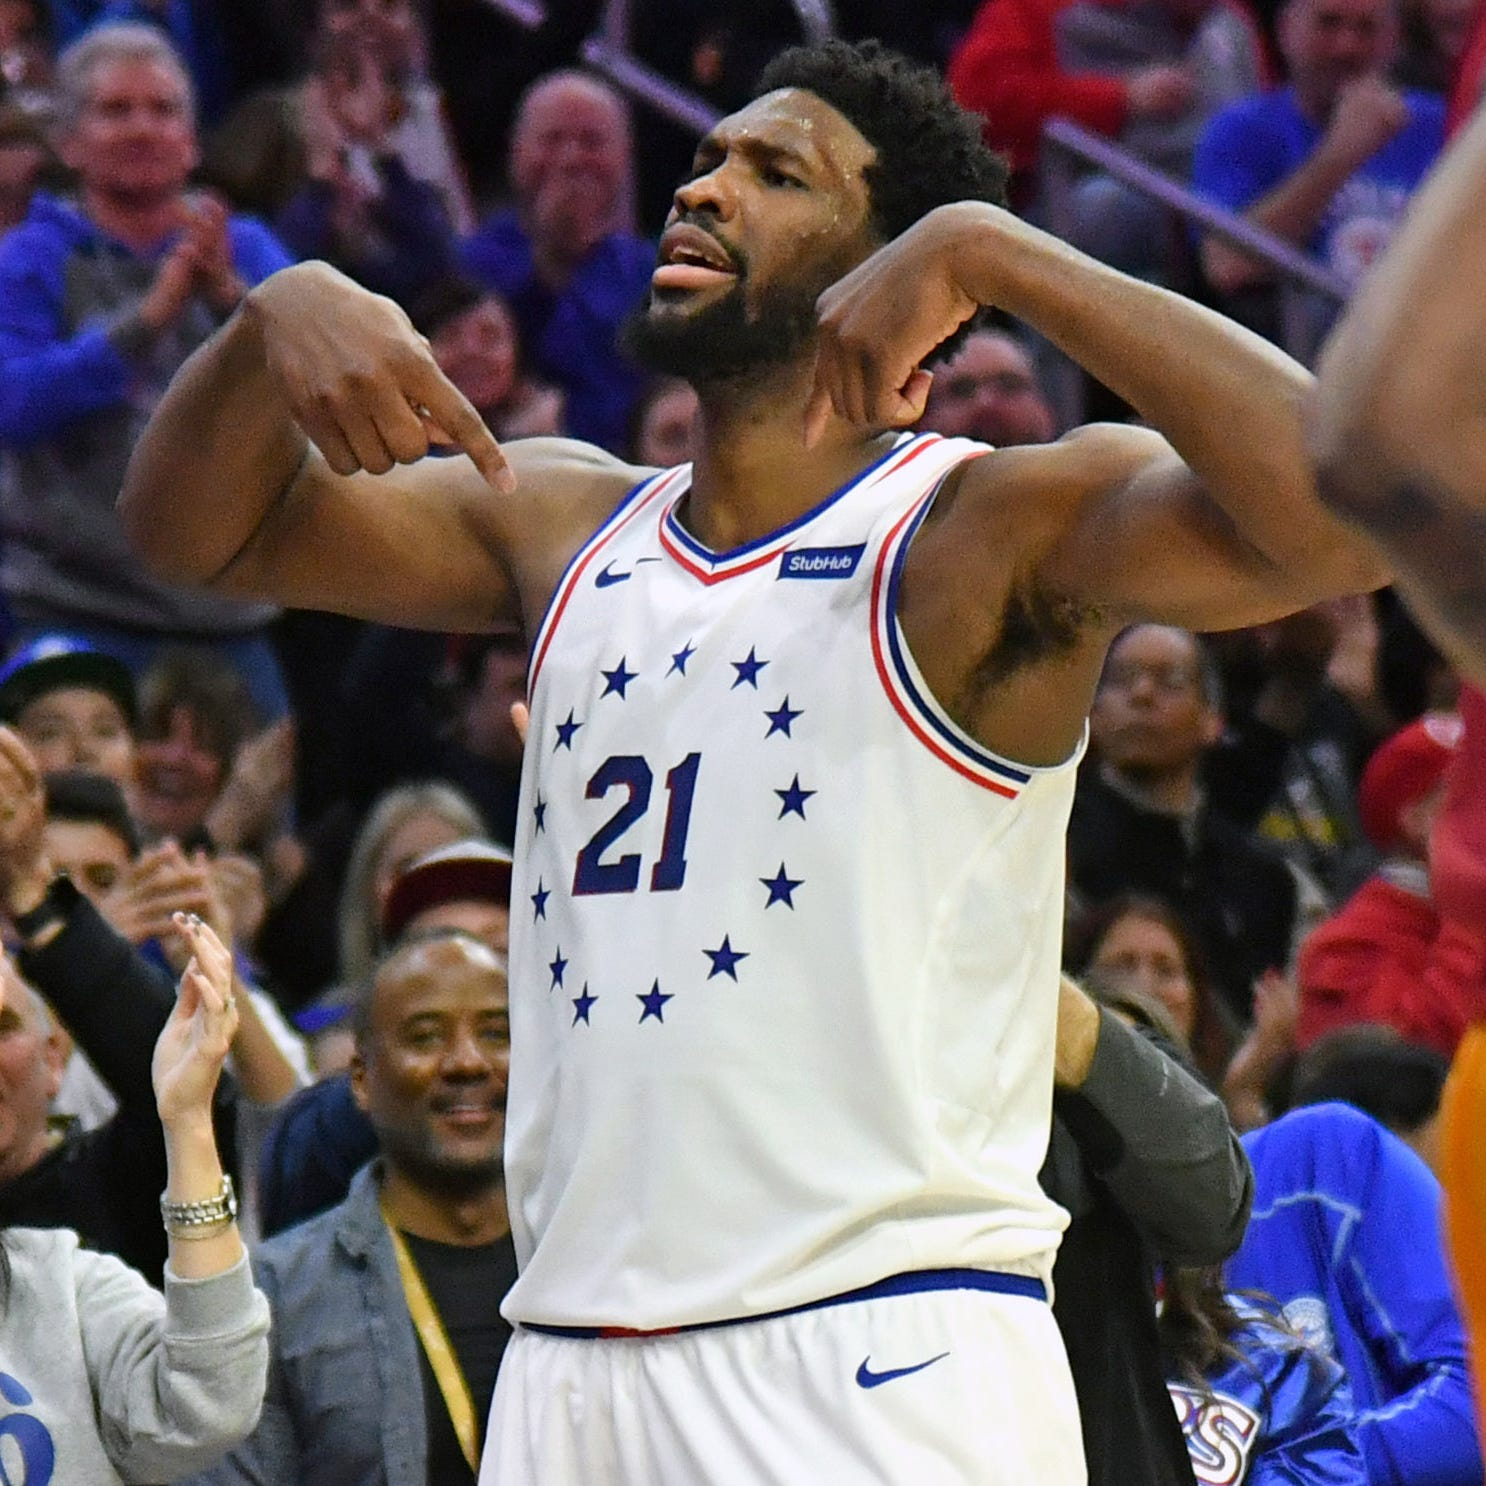 Opinion: Joel Embiid shows how much 76ers missed him in crucial win over Pacers